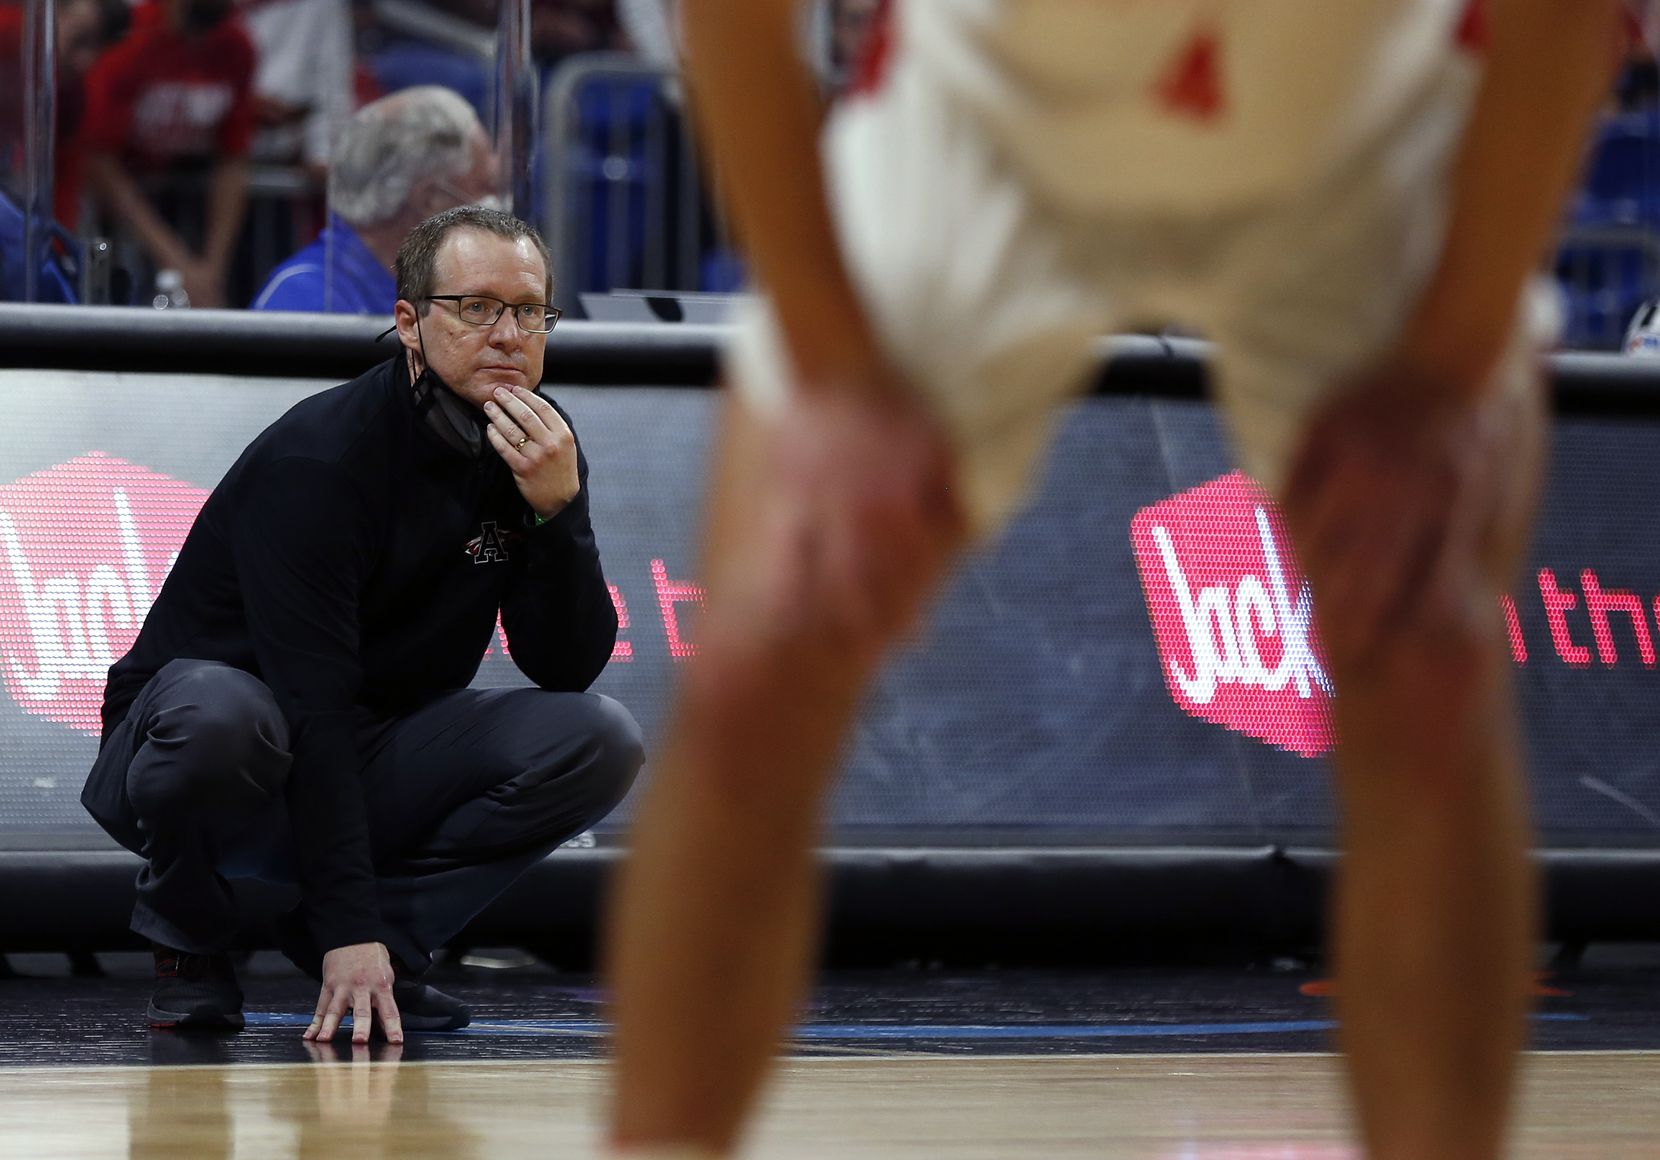 Argyle head coach Russell Perkins watches action. UIL boys Class 4A basketball state championship game between Argyle and Hargrave on Saturday, March 13, 2021 at the Alamodome.